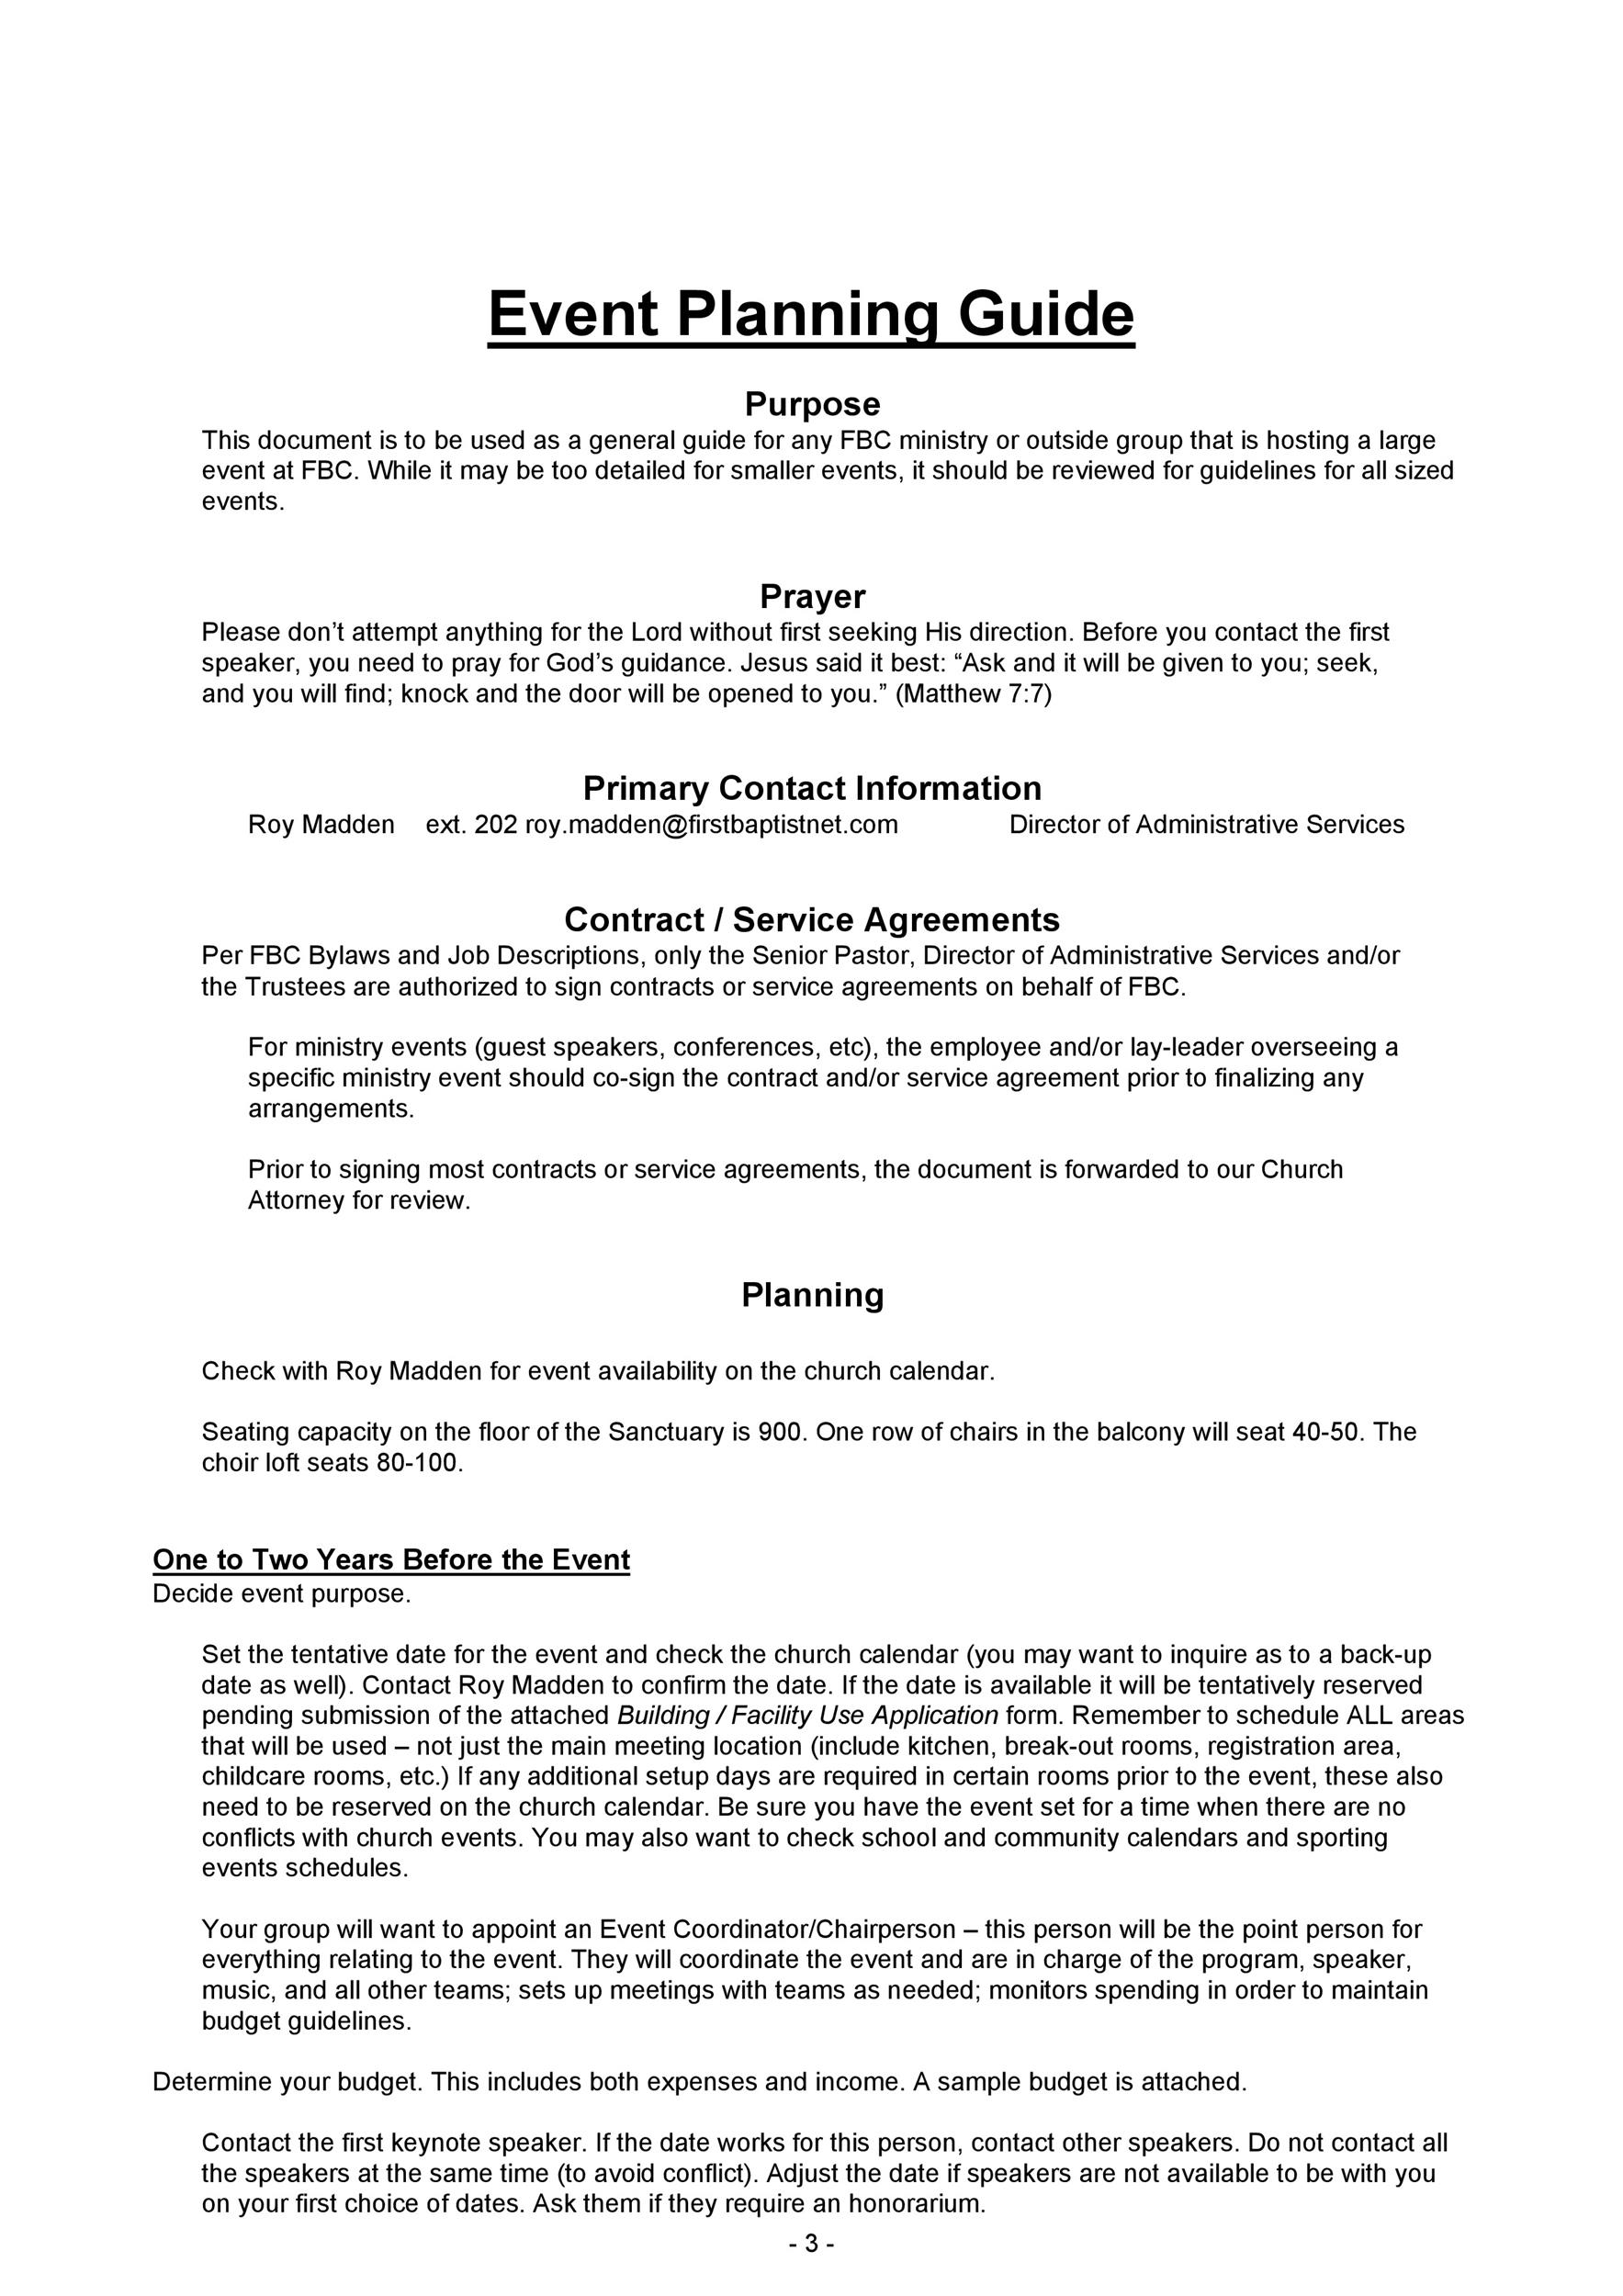 50 Professional Event Planning Checklist Templates - Template Lab - Event Planning Document Template